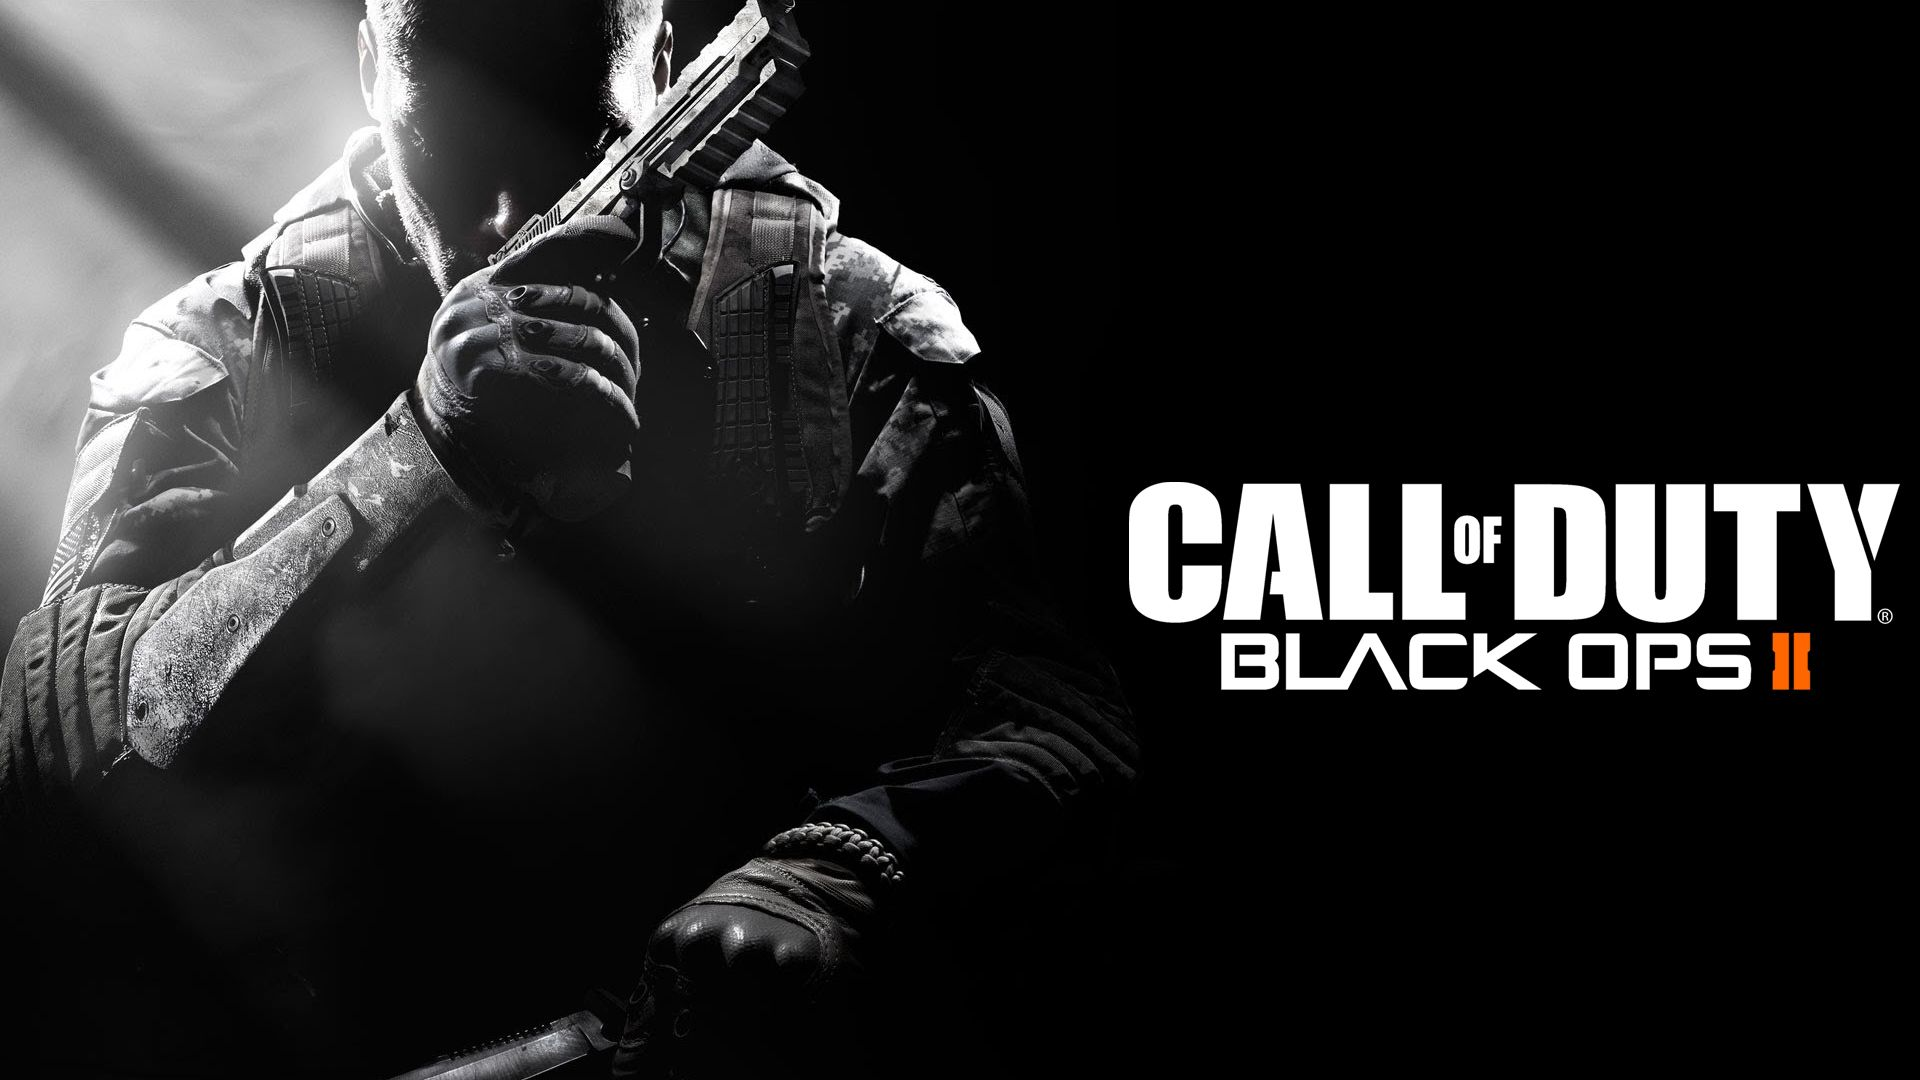 Call of Duty: Black Ops 2 face schimbari in multiplayer